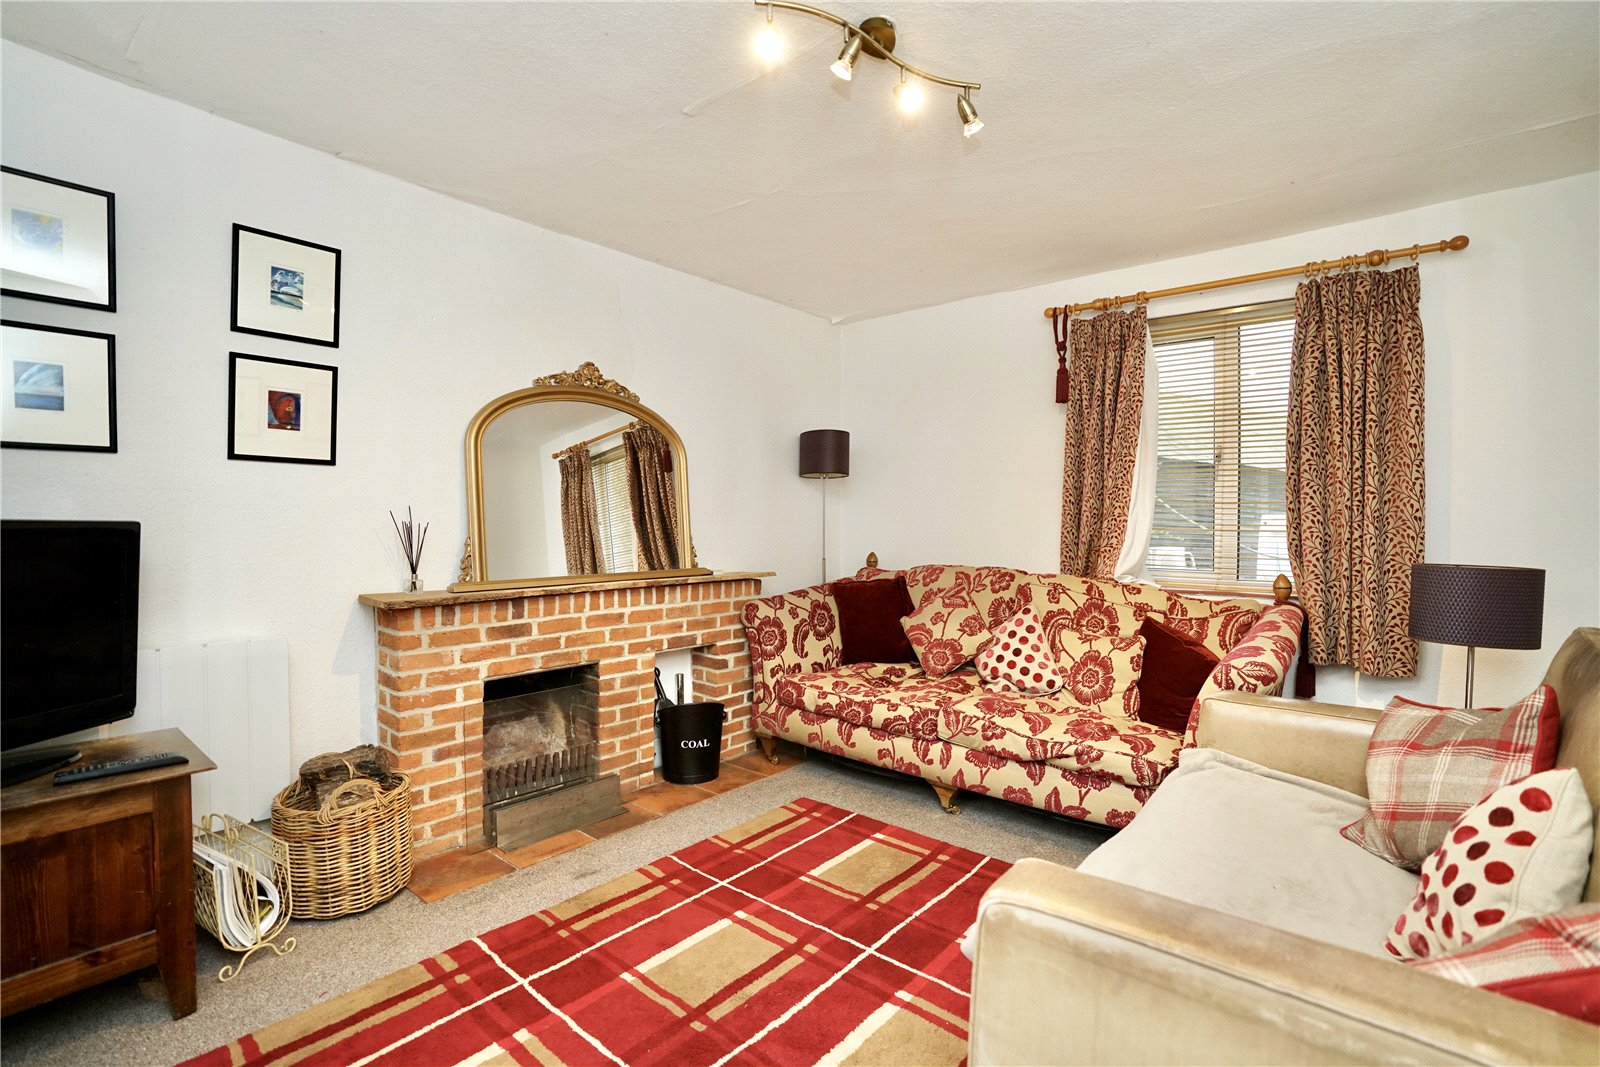 4 bed house for sale in Honeydon, Bedford 3